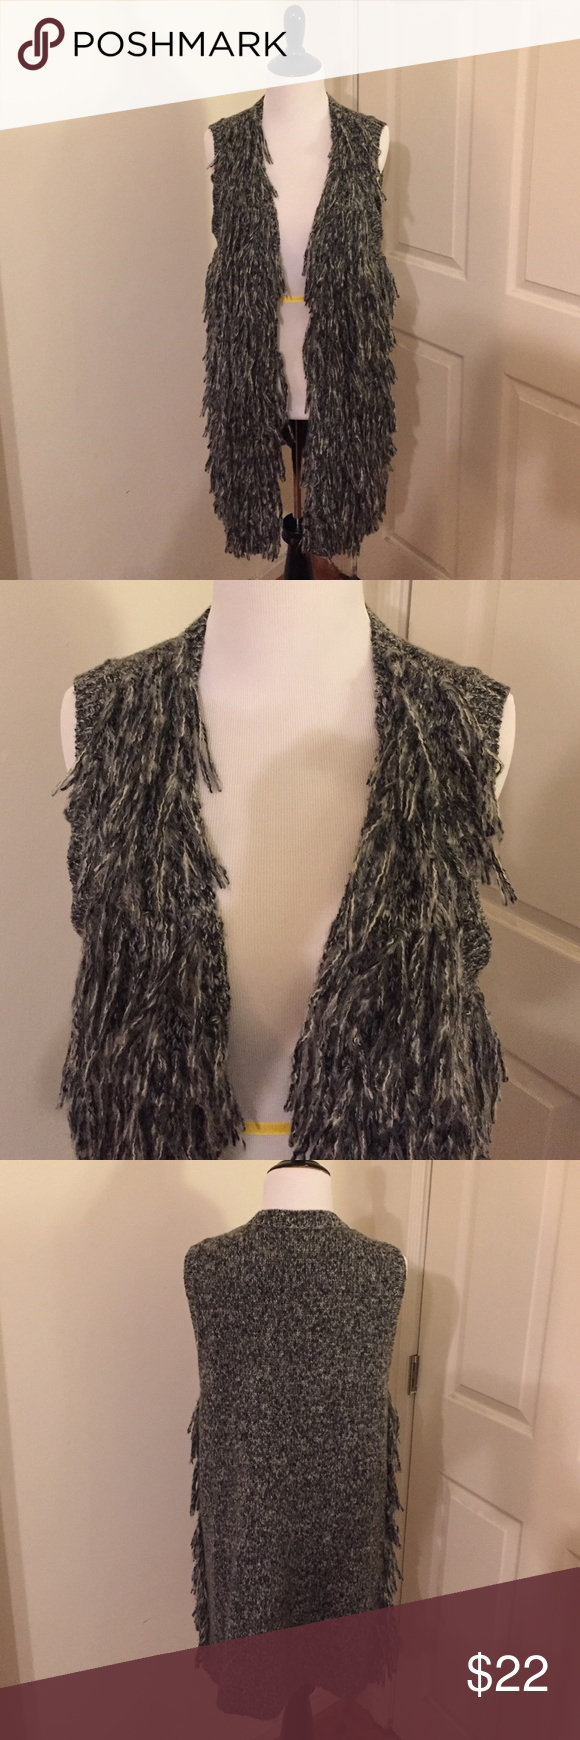 H&M Gray Fringe Vest NWOT Awesome vest in a soft knit with fringe at front and no buttons.  56% acrylic, 44% polyester H&M Sweaters